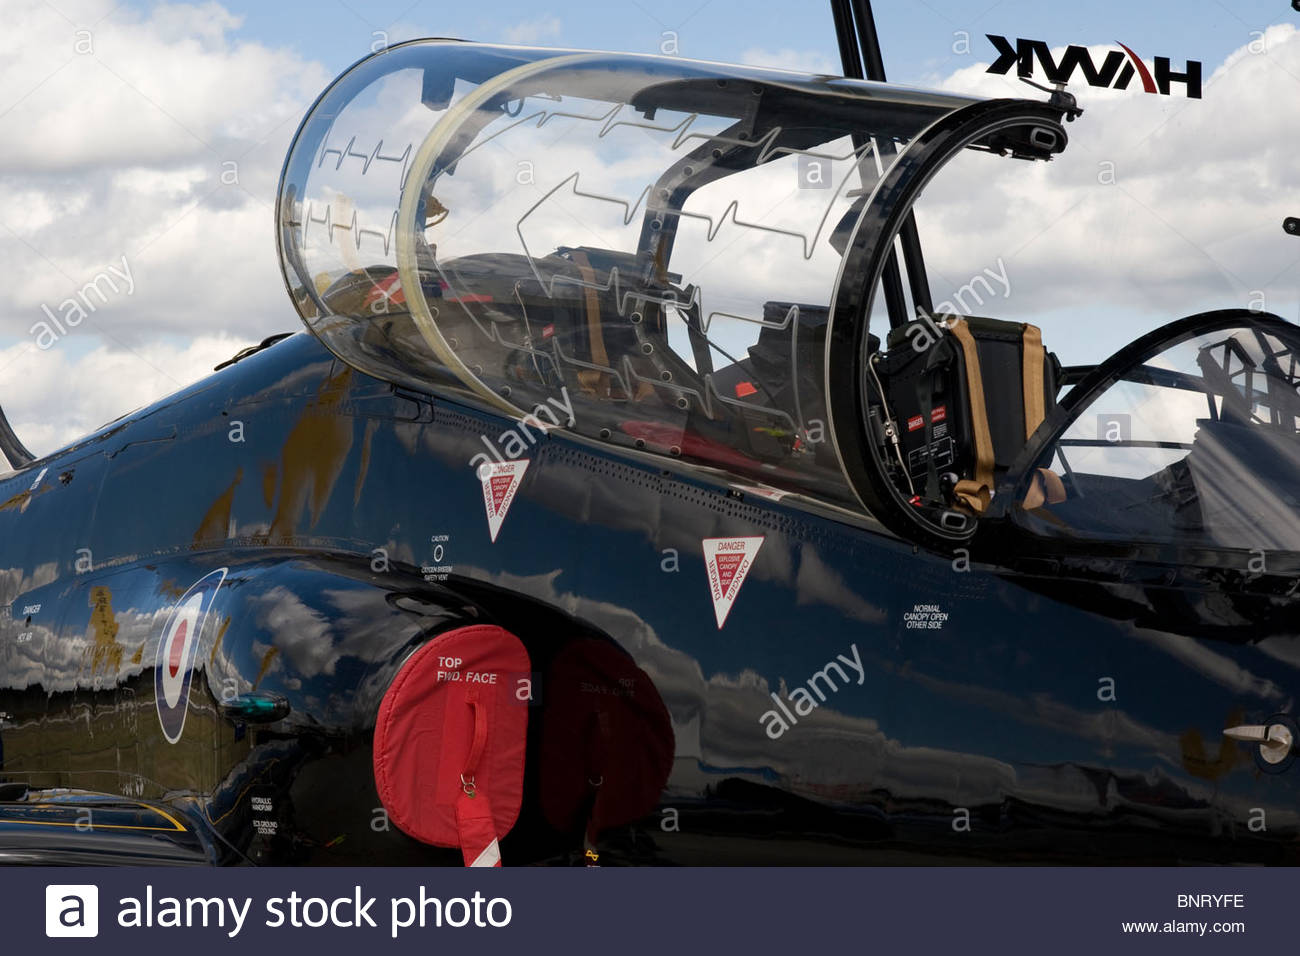 cockpit-of-bae-systems-hawk-jet-trainer-at-farnborough-international-BNRYFE.jpg